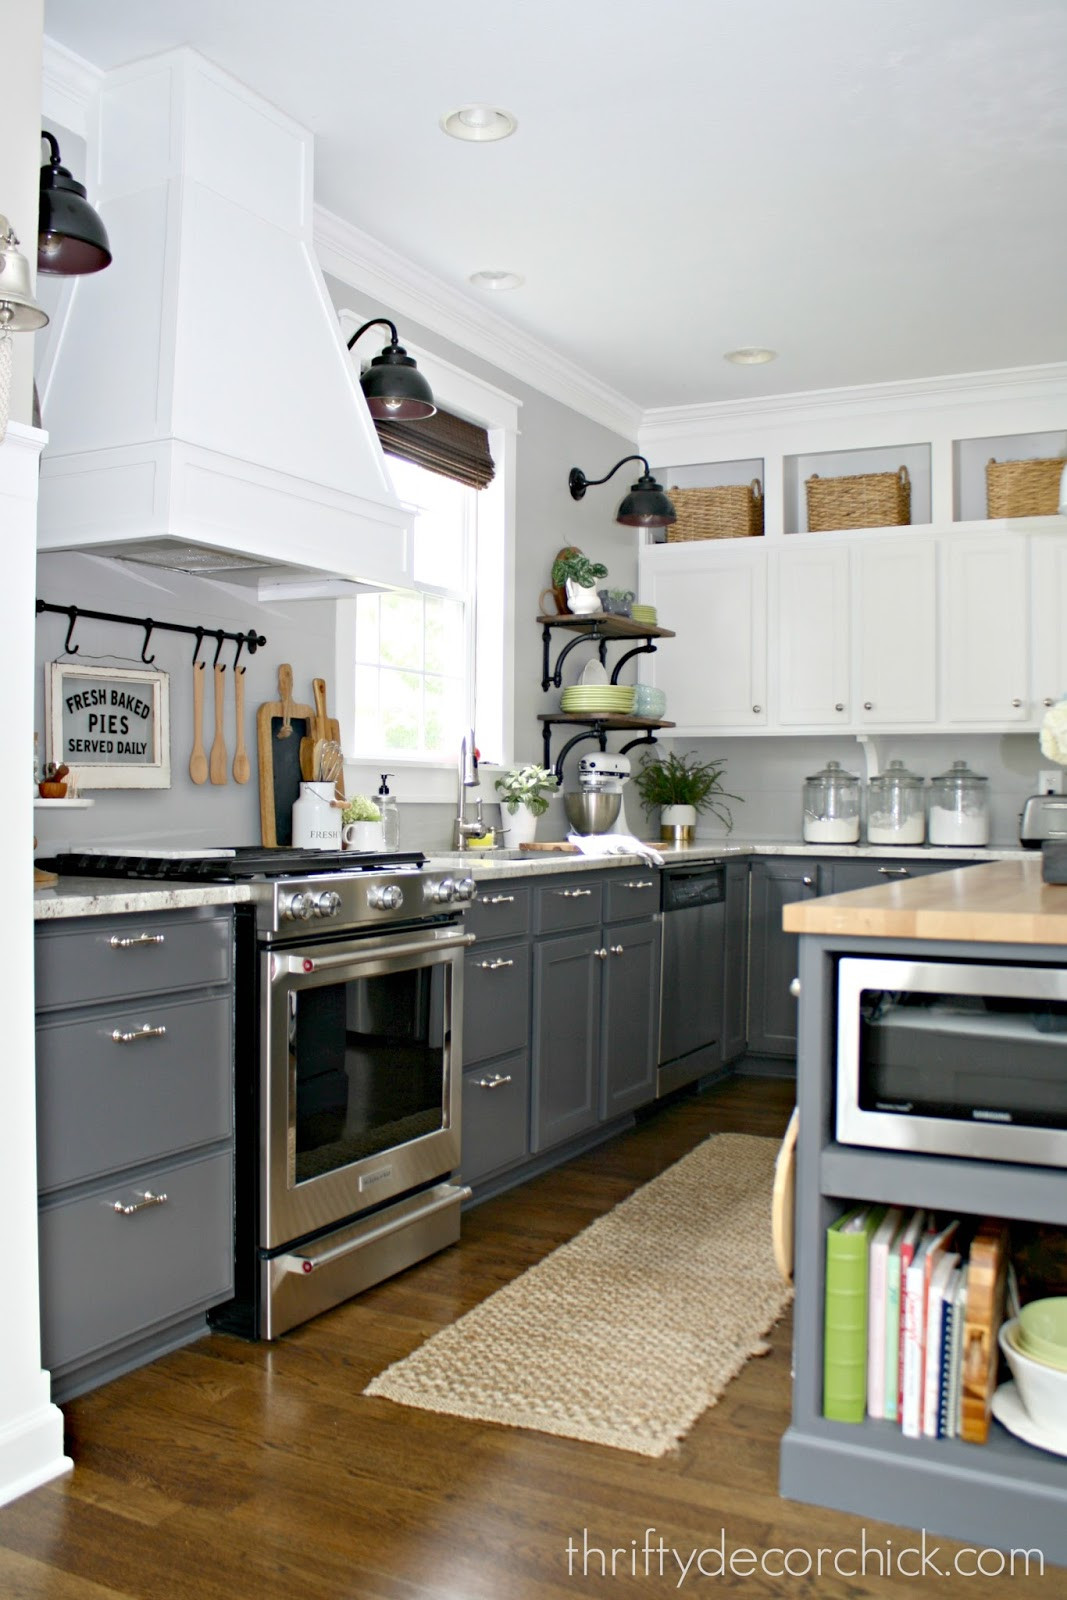 Diy Kitchens  A DIY kitchen renovation update nine months later from